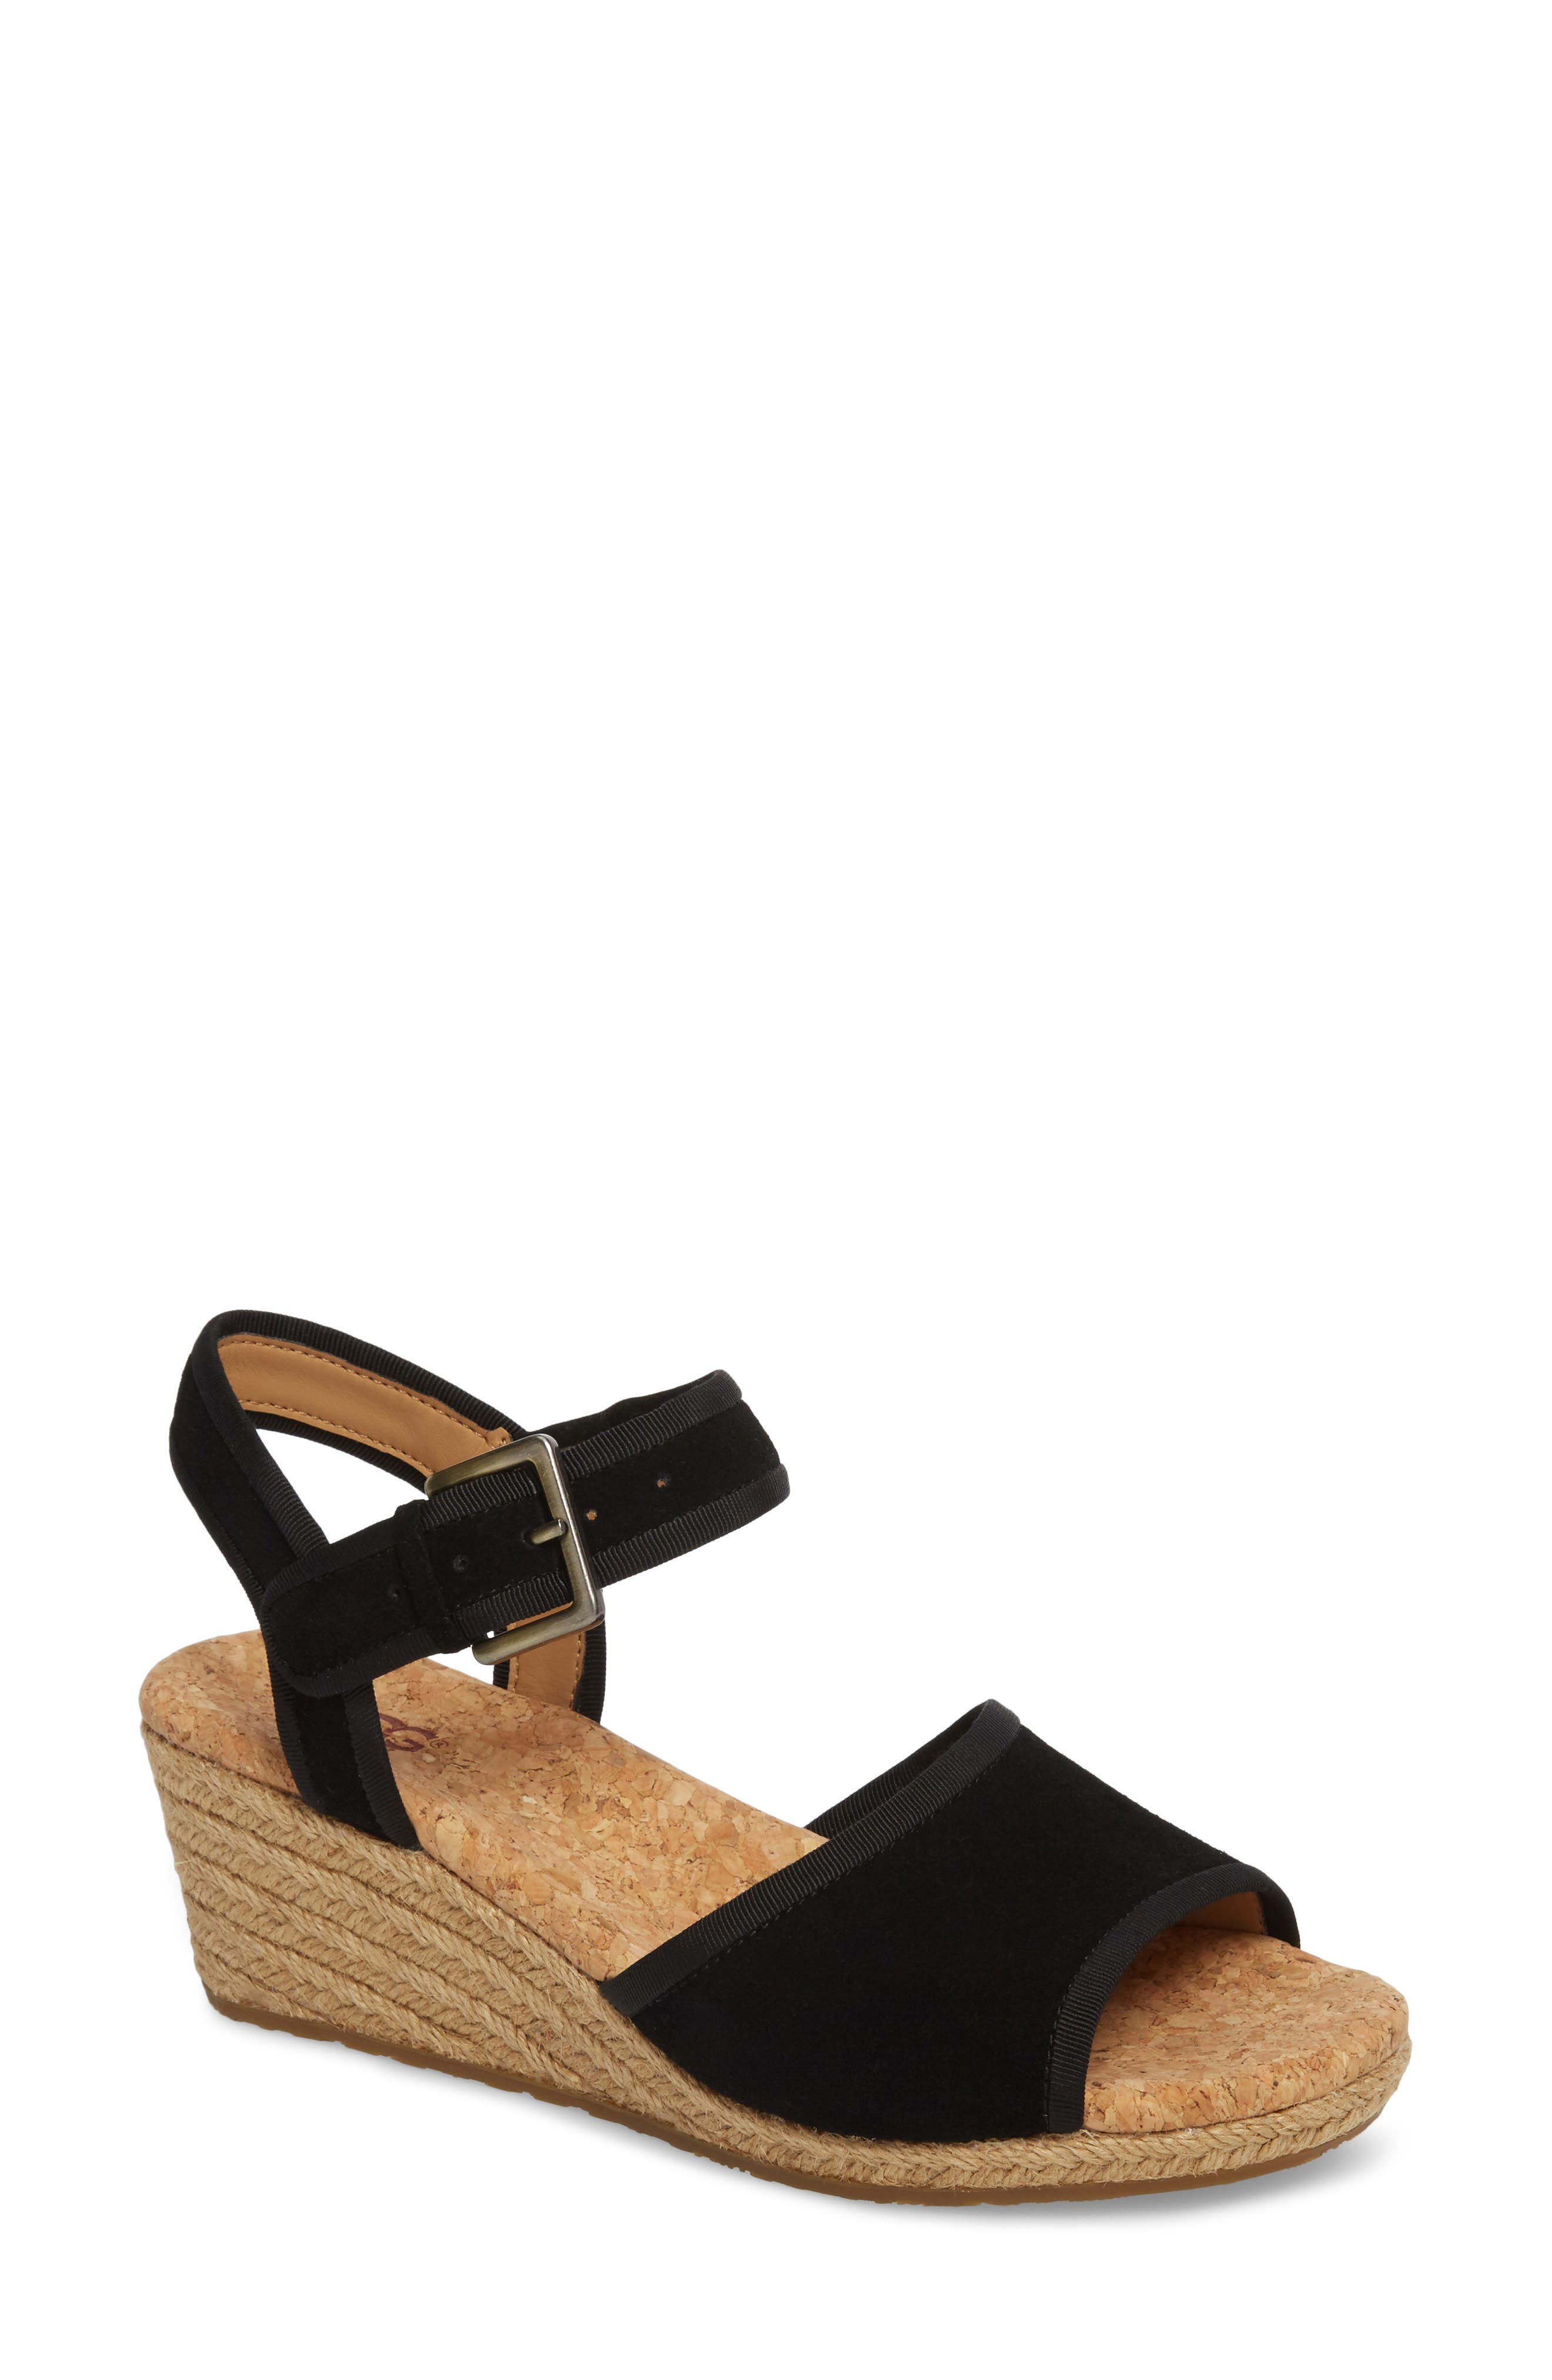 Maybell Wedge Sandal,                             Main thumbnail 1, color,                             Black Suede